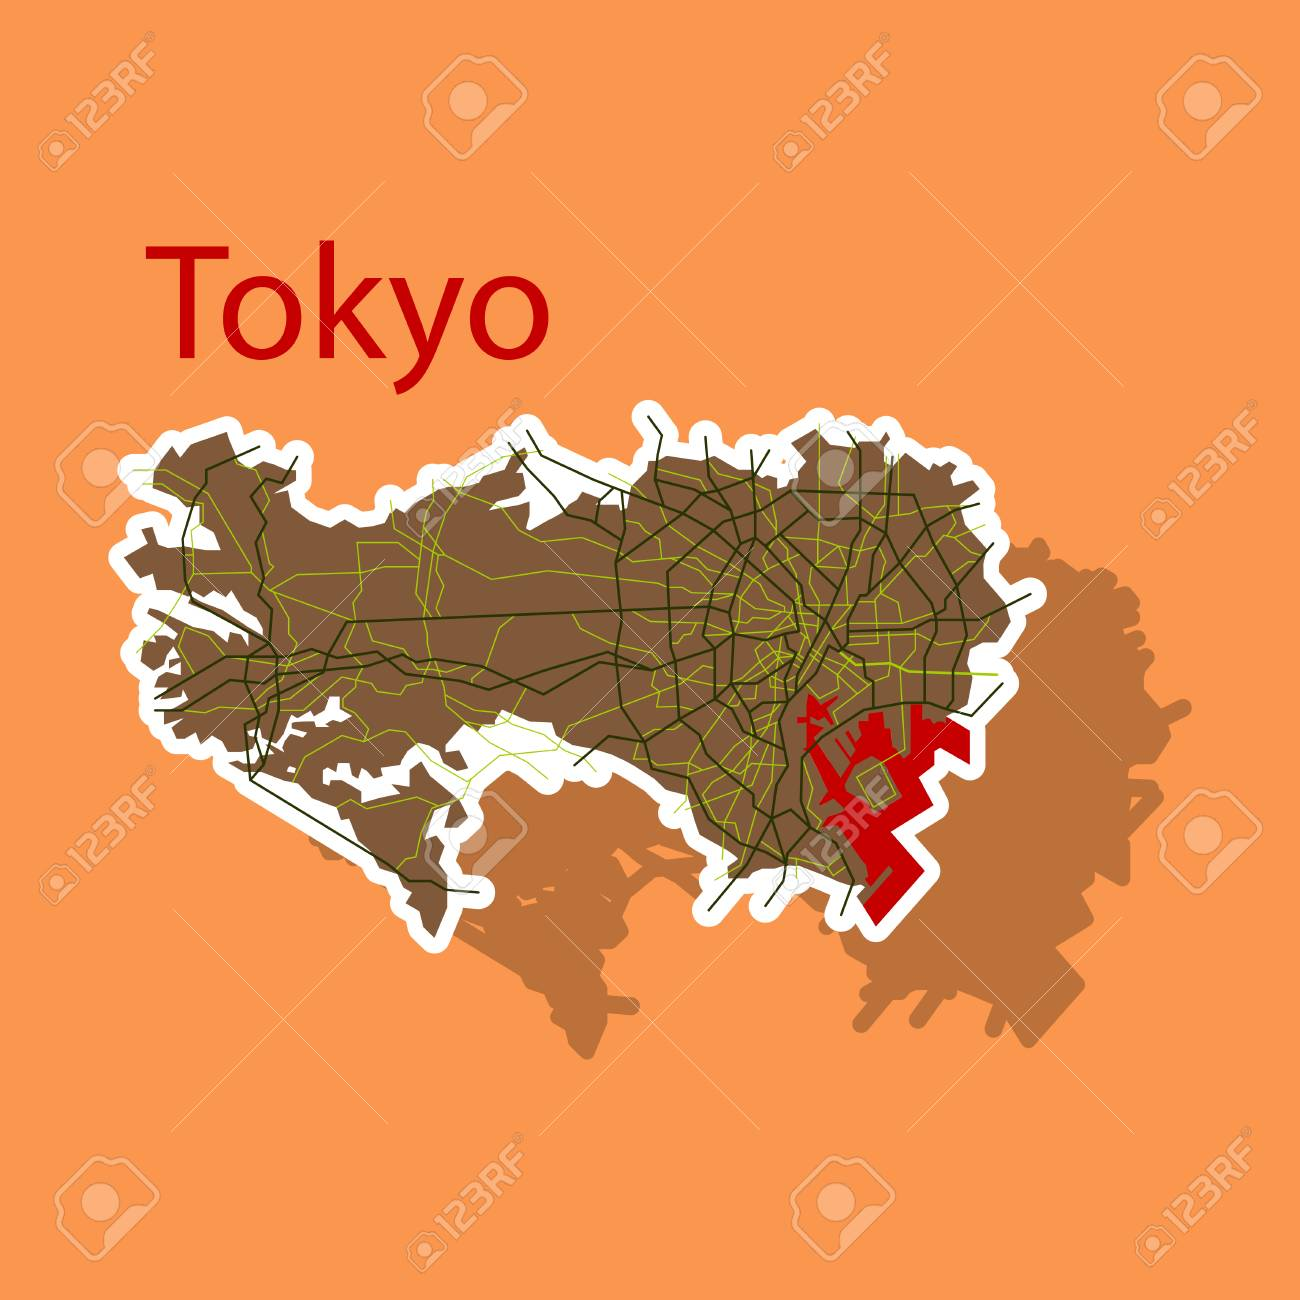 Picture of: Japan Tokyo Top View Map Showing Streets Design On Top Royalty Free Cliparts Vectors And Stock Illustration Image 99313085